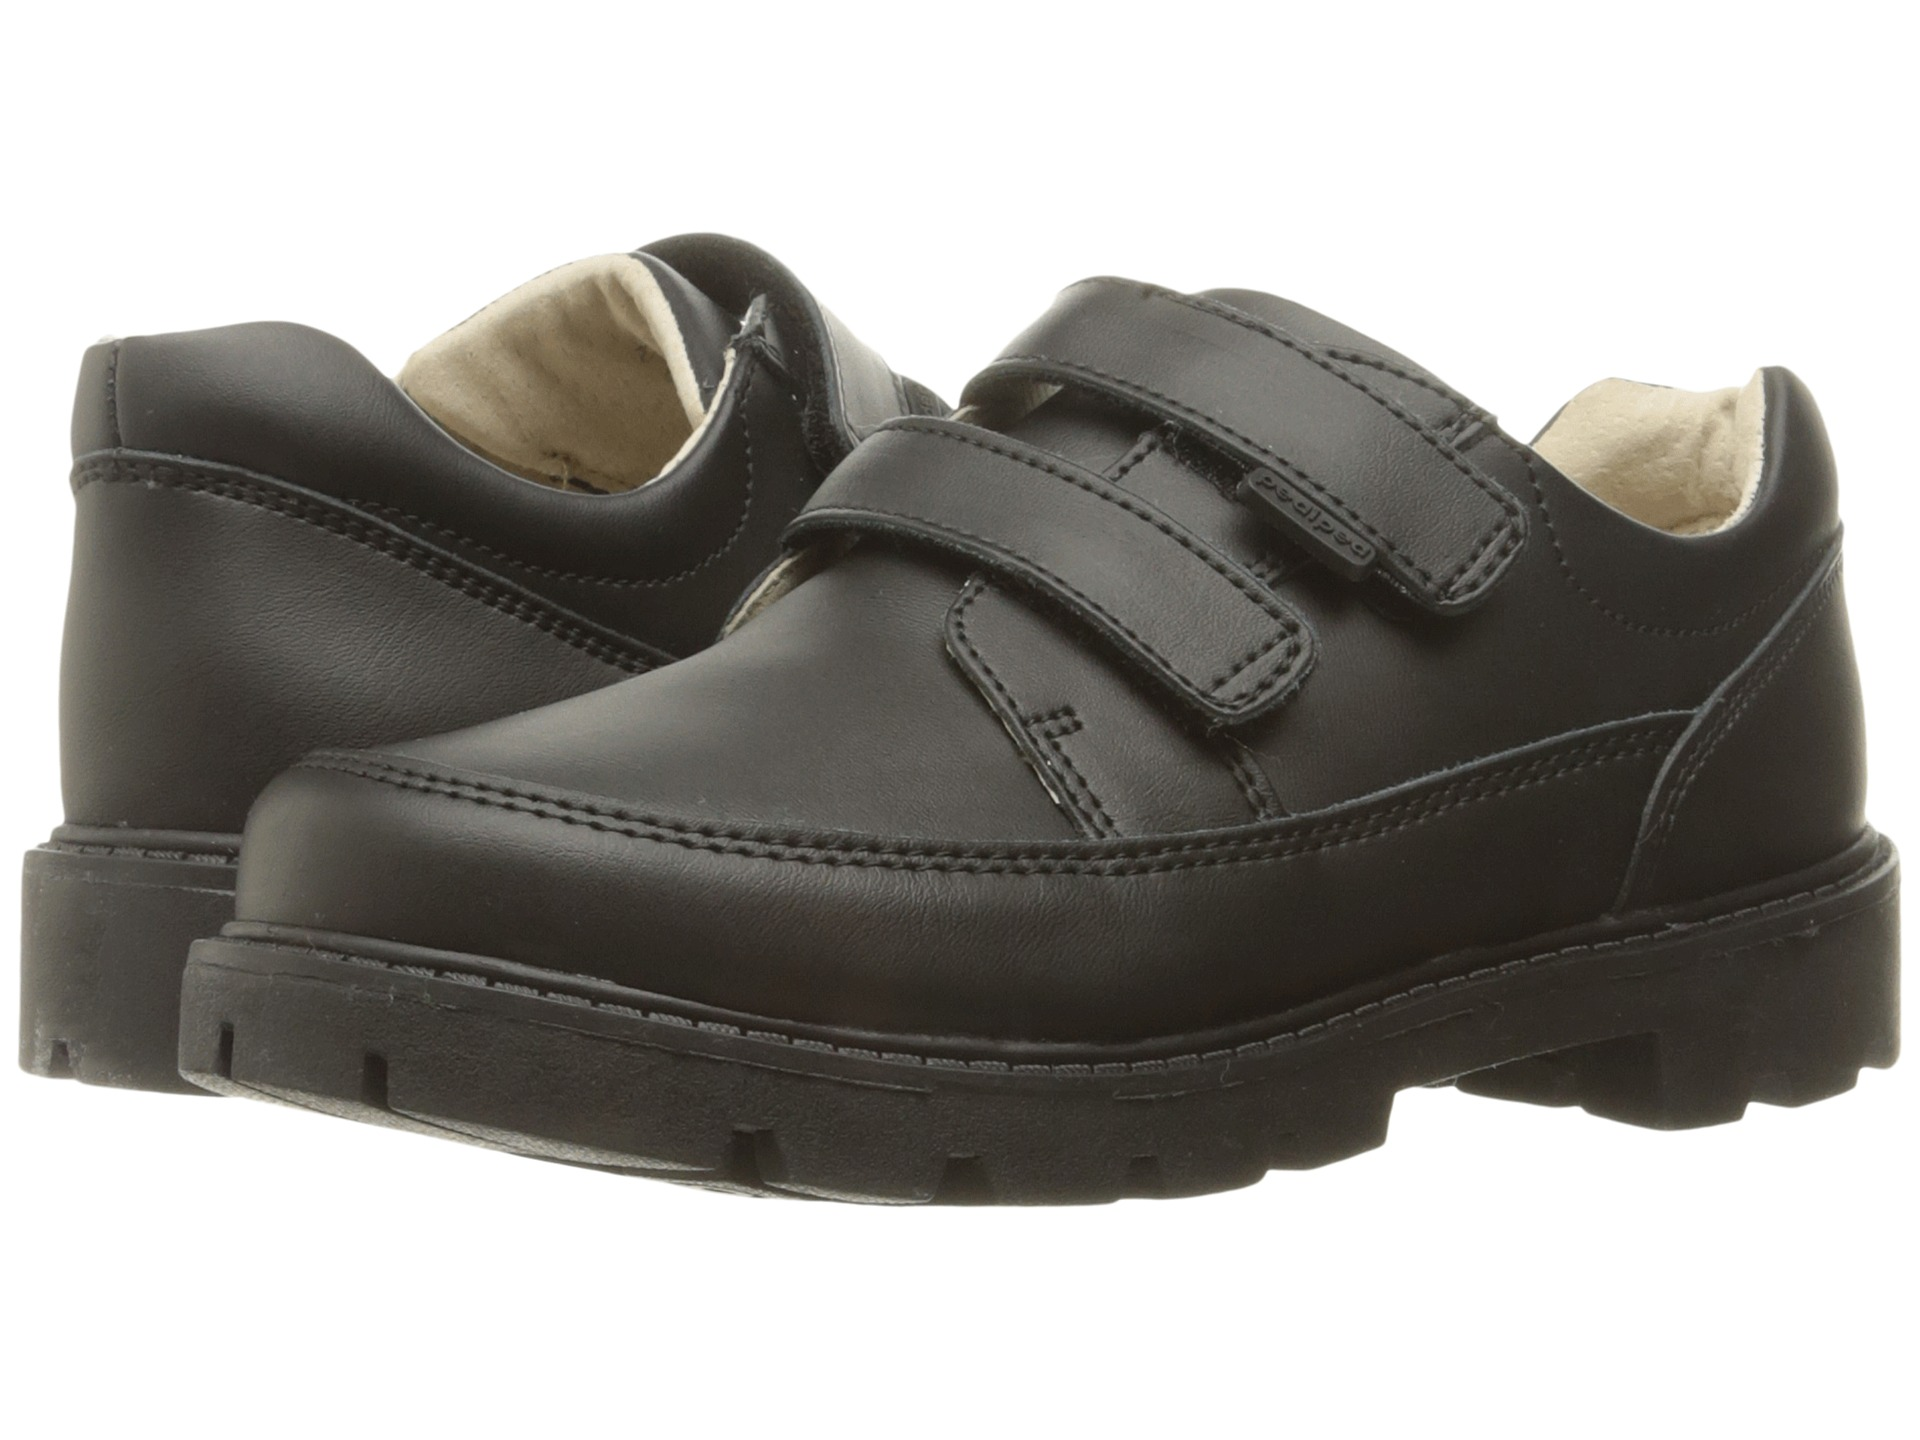 pediped® footwear is a smart choice for parents concerned with the long-term development of their children's feet. pediped has been awarded the American Podiatric Medical Association Seal of Acceptance for creating shoes that promote healthy foot development.